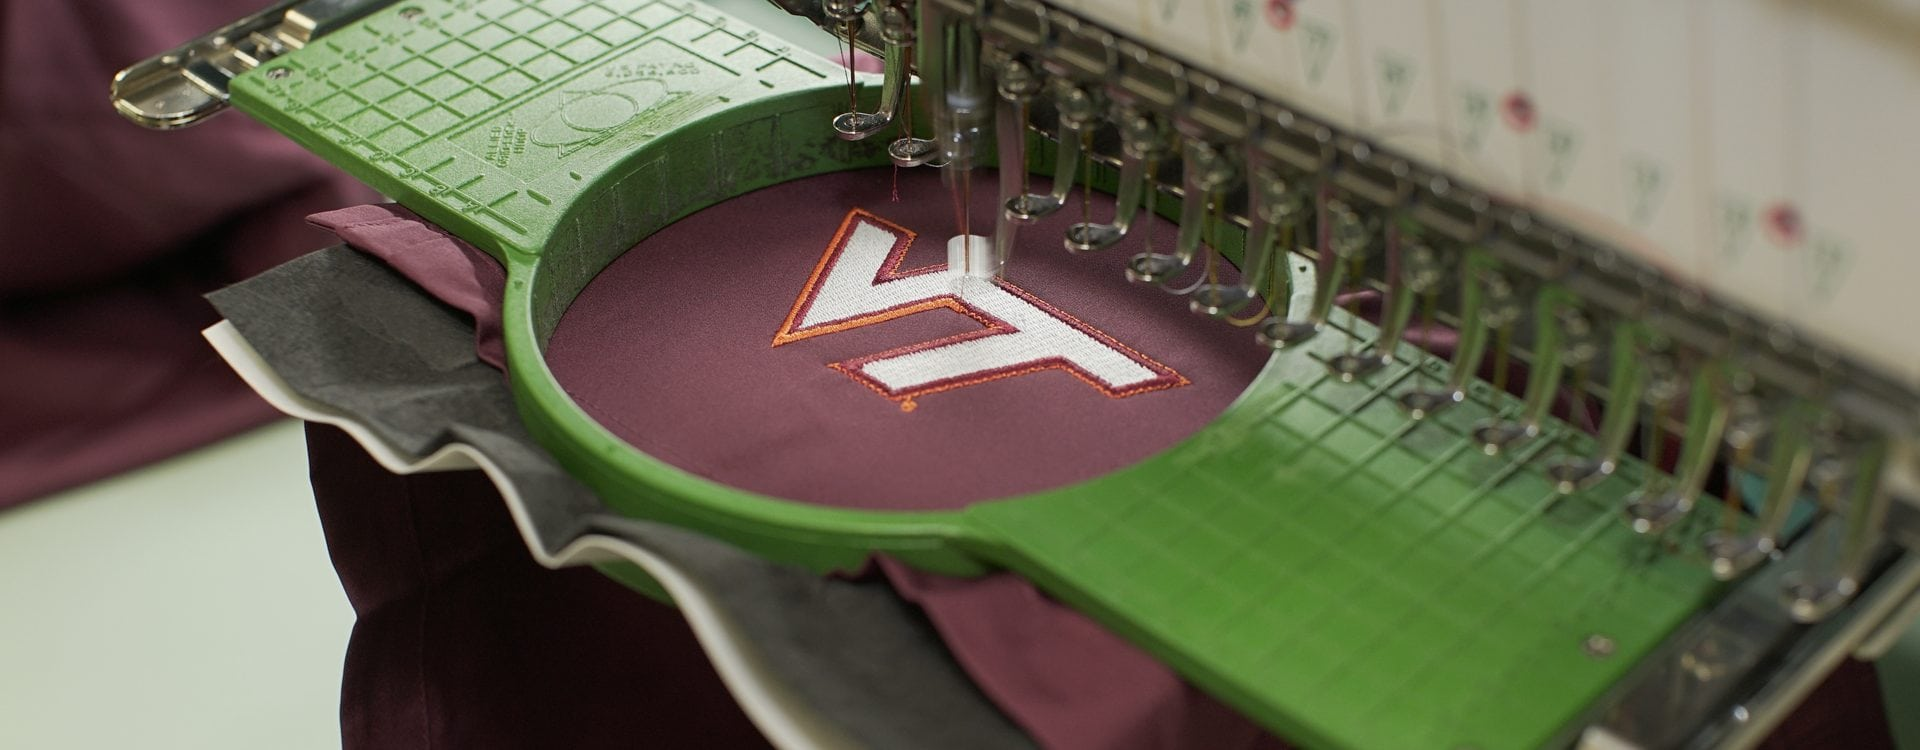 Custom Embroidery Services Photo